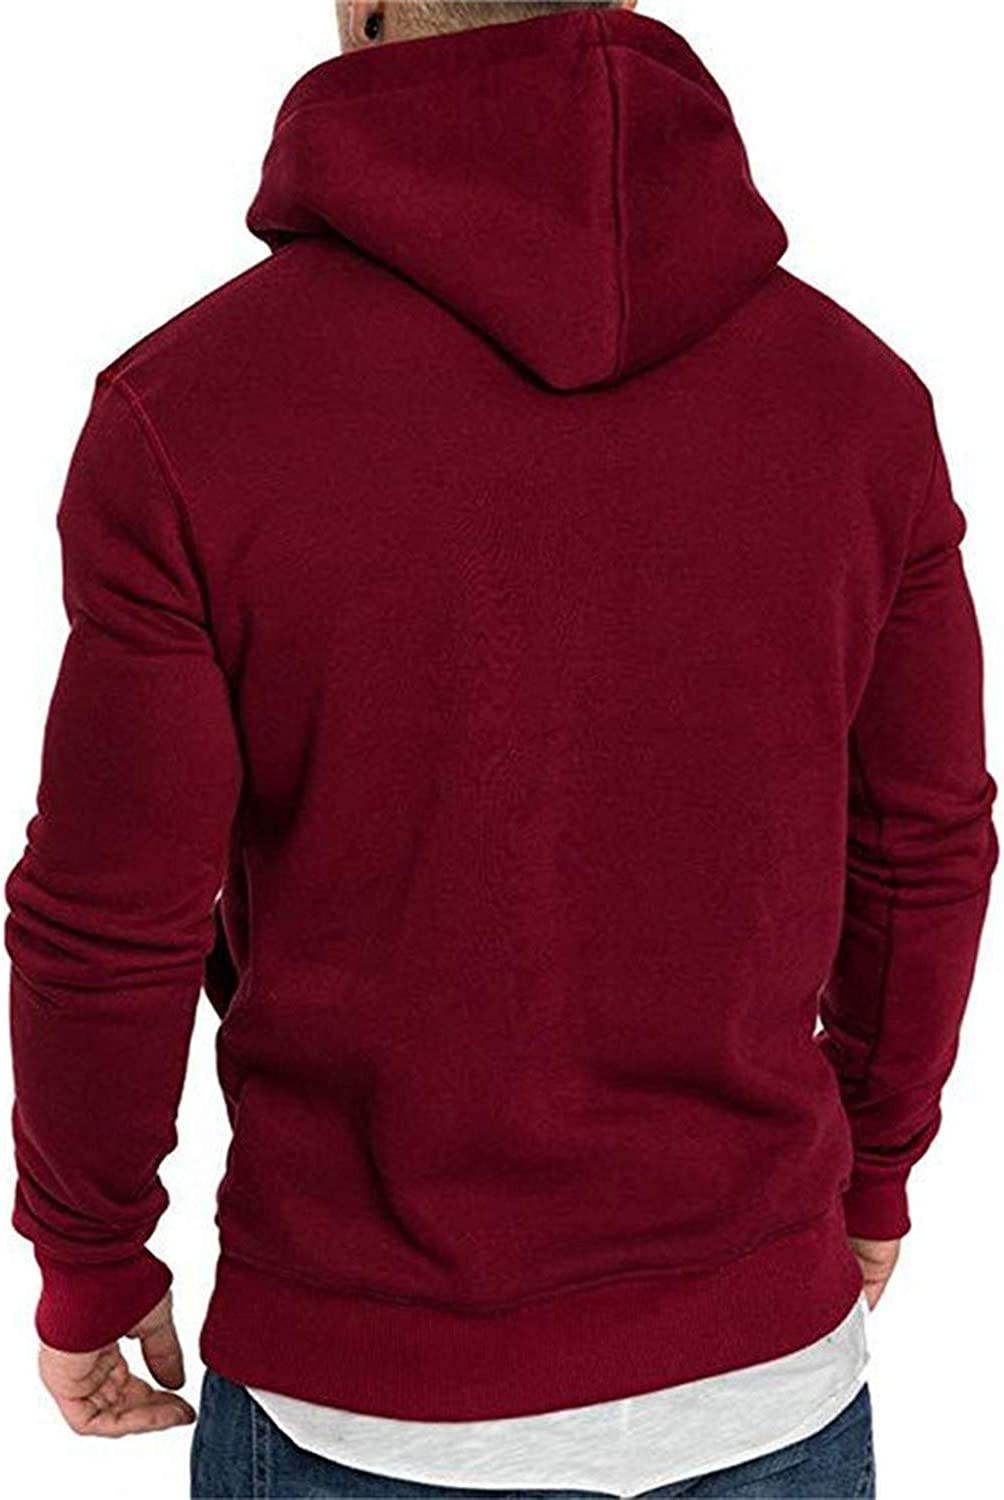 Men Sweatshirts Long Sleeve Autumn Spring Casual Hoodies Top Boy Blouse Tracksuits MWW144